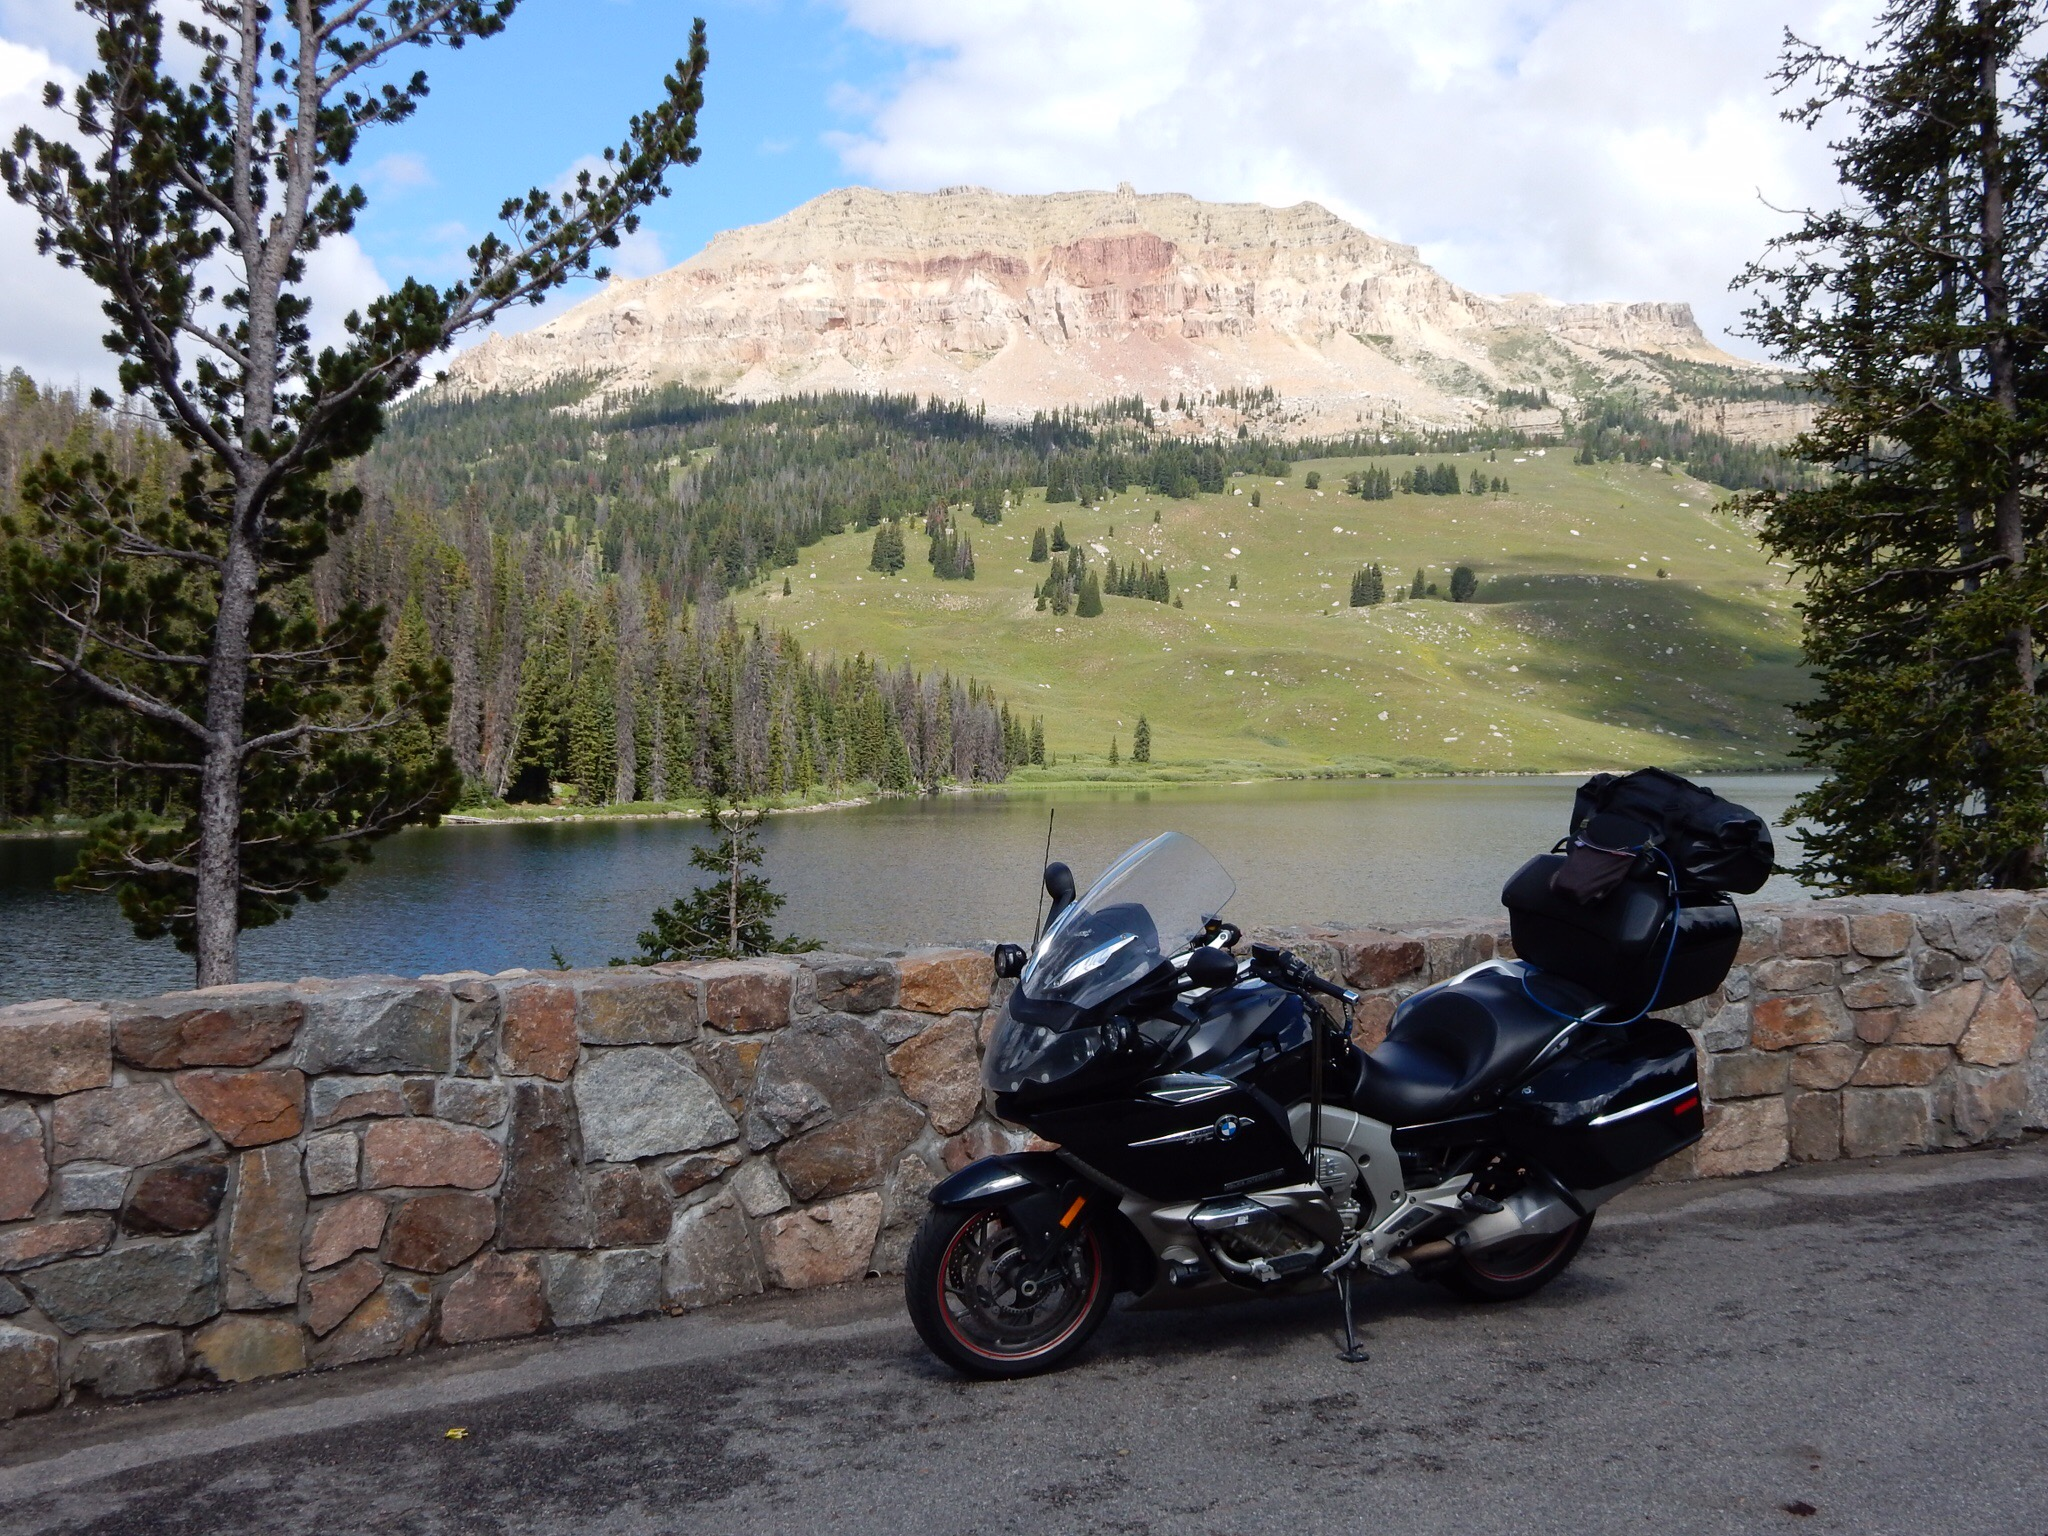 The Nightowl parked in front of Beartooth Lake. (That wall is new.)